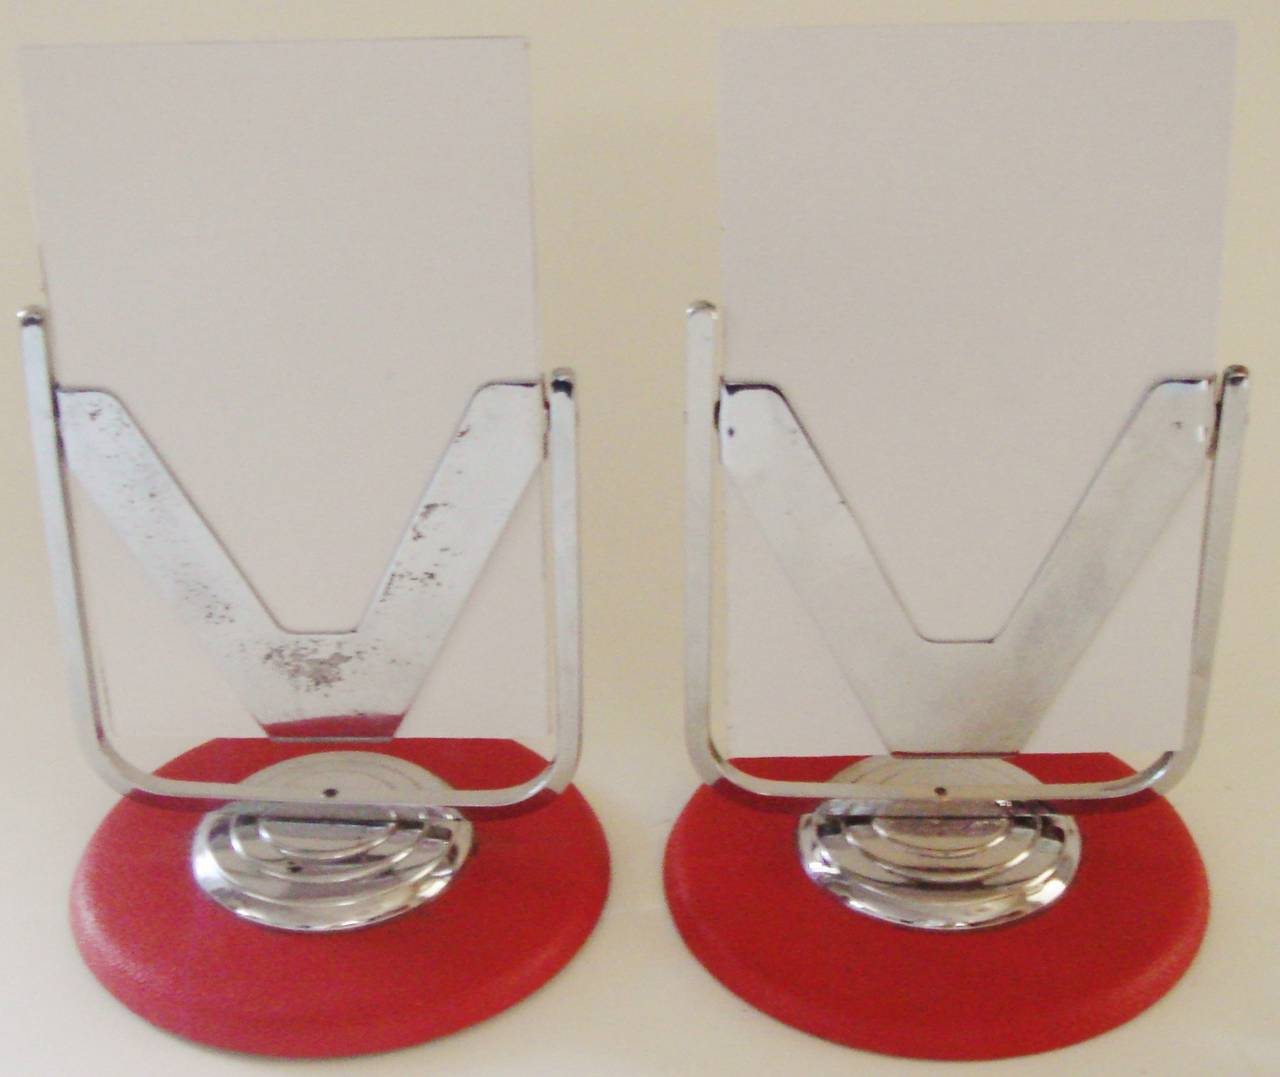 Art Deco Pair of English Deco Revival Chrome and Red Leatherette Tilt Desk Frames For Sale